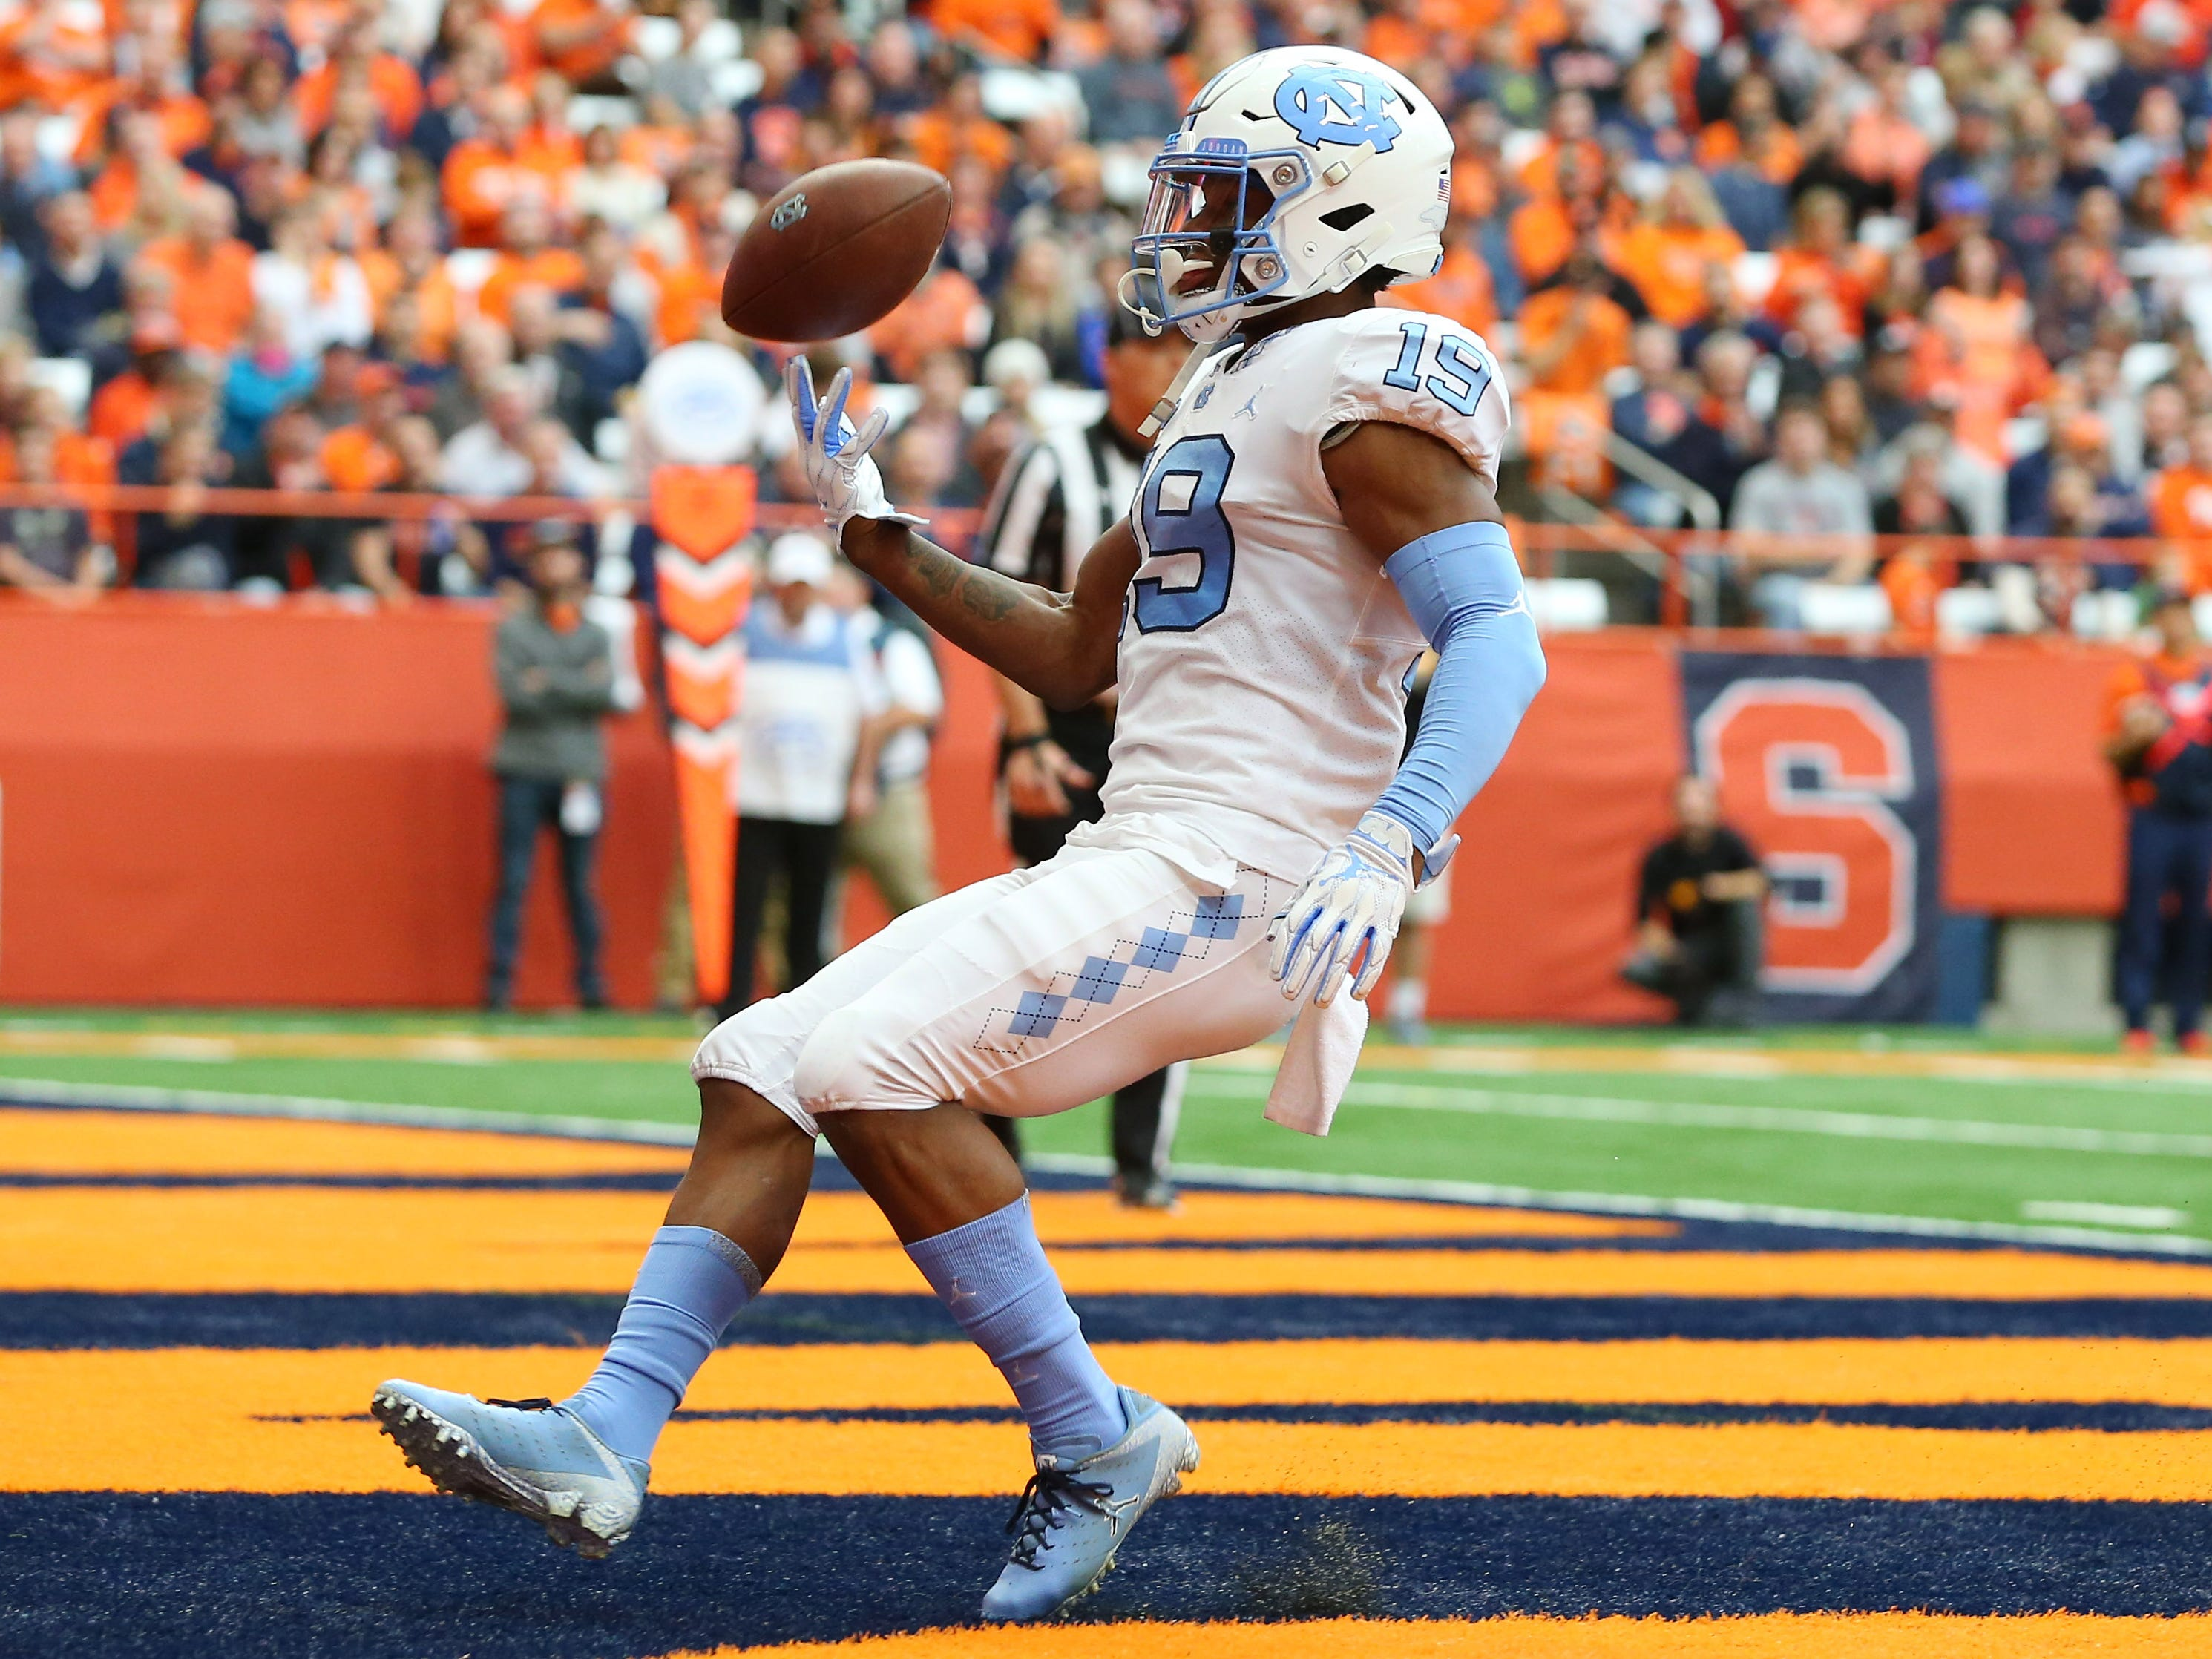 North Carolina Tar Heels wide receiver Dazz Newsome cruises in for a first-quarter touchdown against Syracuse at the Carrier Dome.